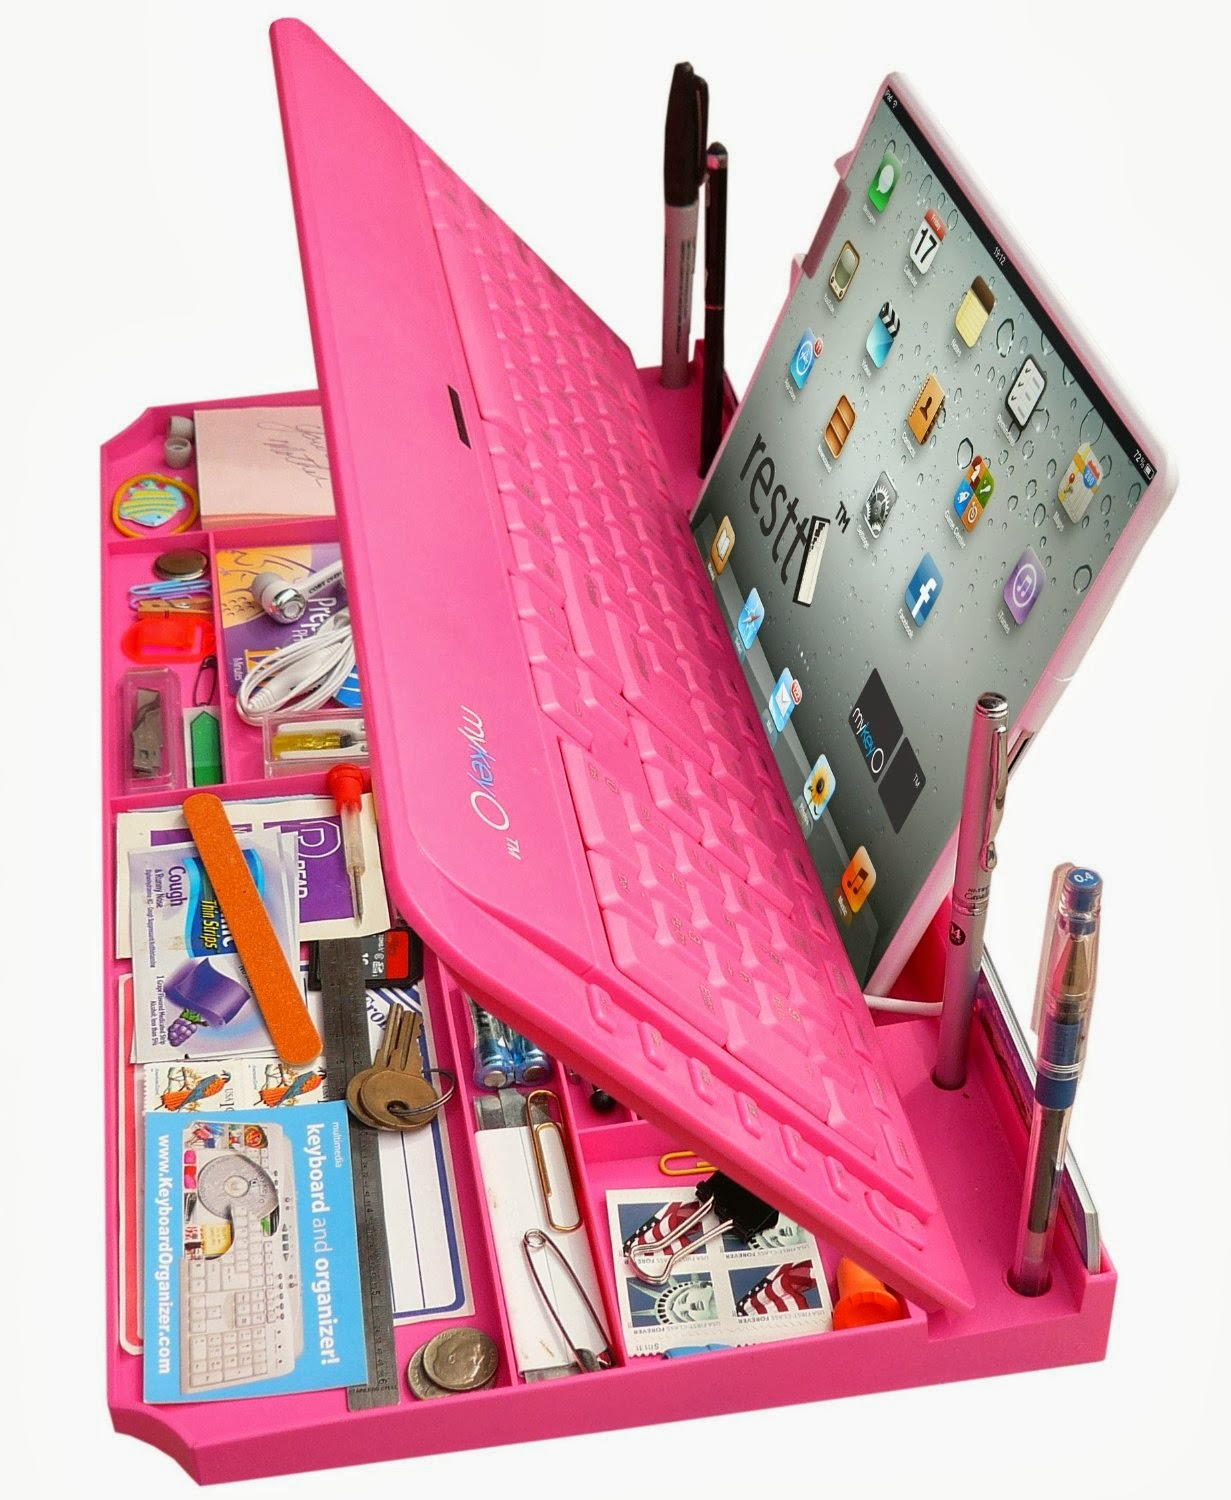 Pin on DIY Ideas |Awesome Stuff For Teens